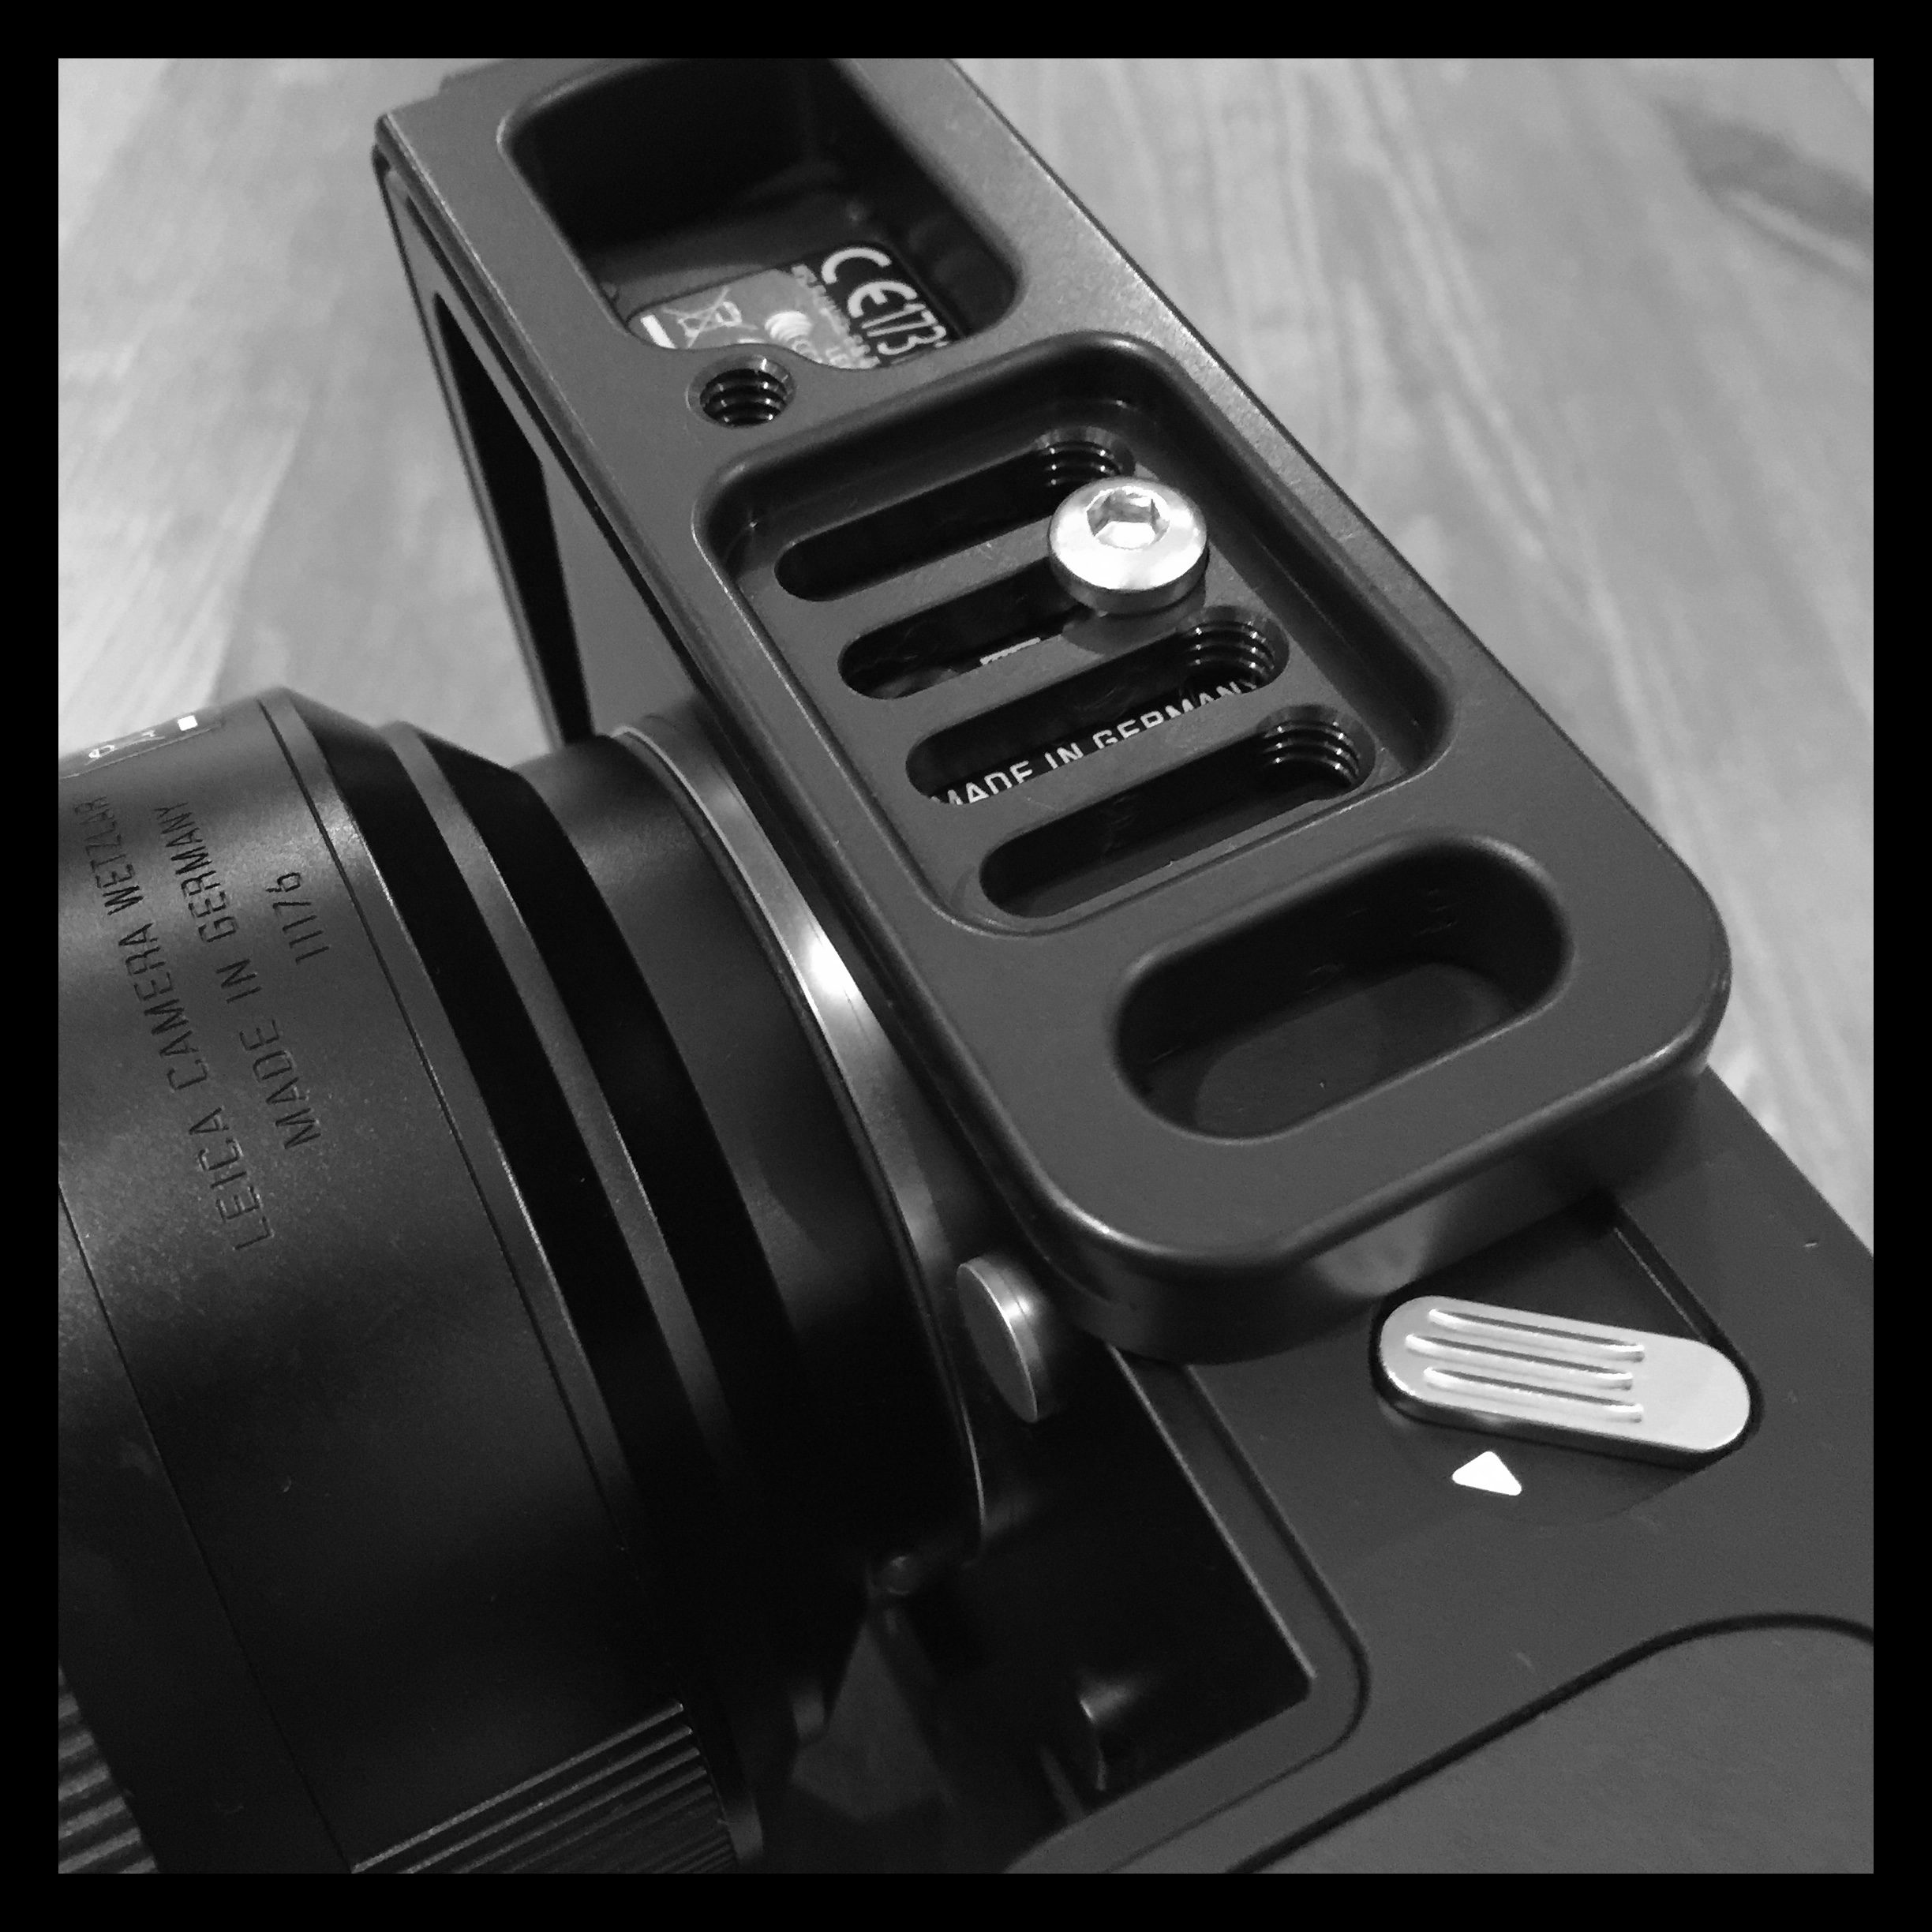 The length of the L-plate, when mounted in the second slot like pictured, still leaves space to access the battery hatch and release.